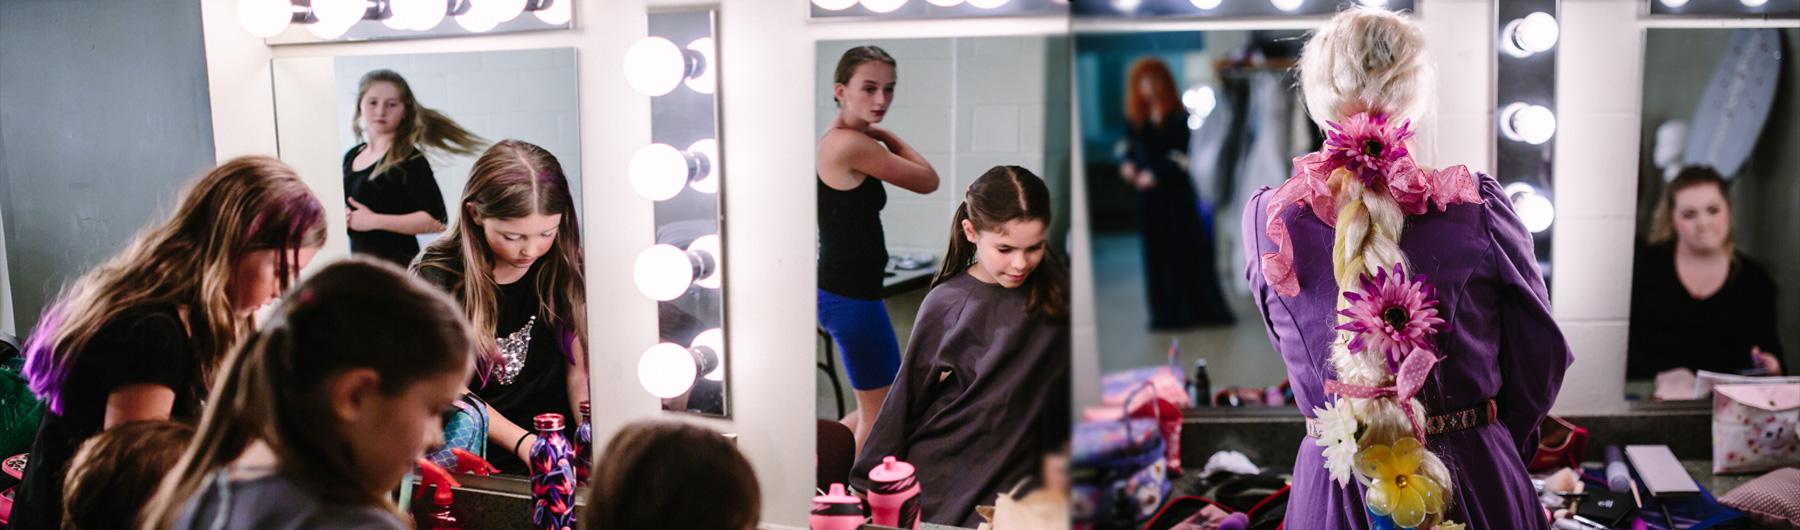 image of dressing room with youth getting ready for programs in the Algonquin Theatre